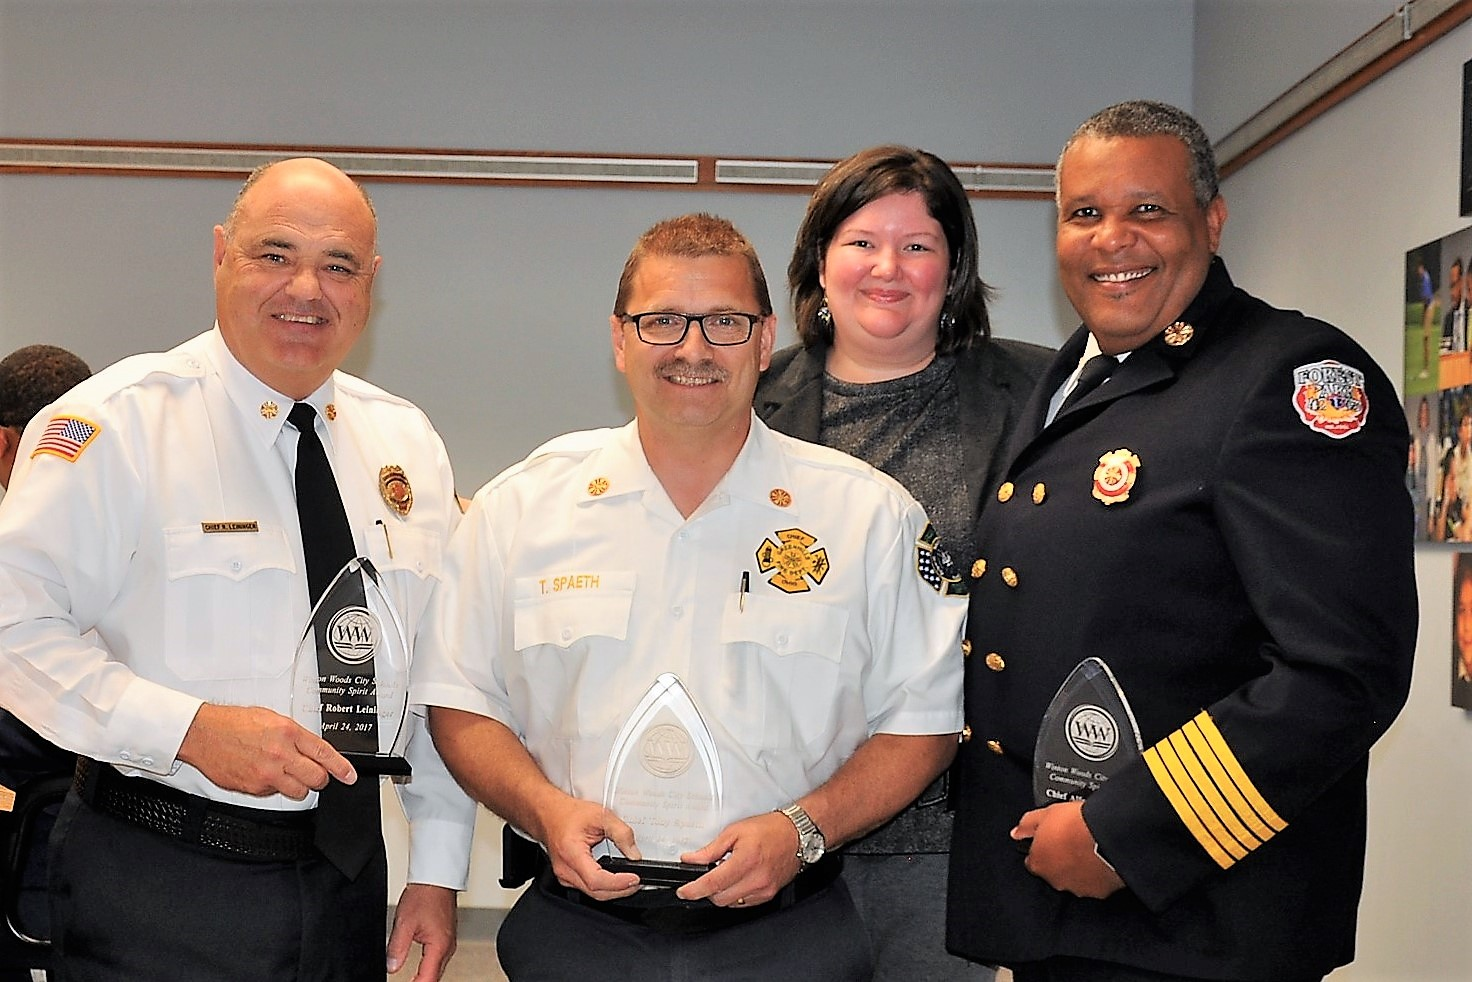 Fire Chiefs Community Spirit